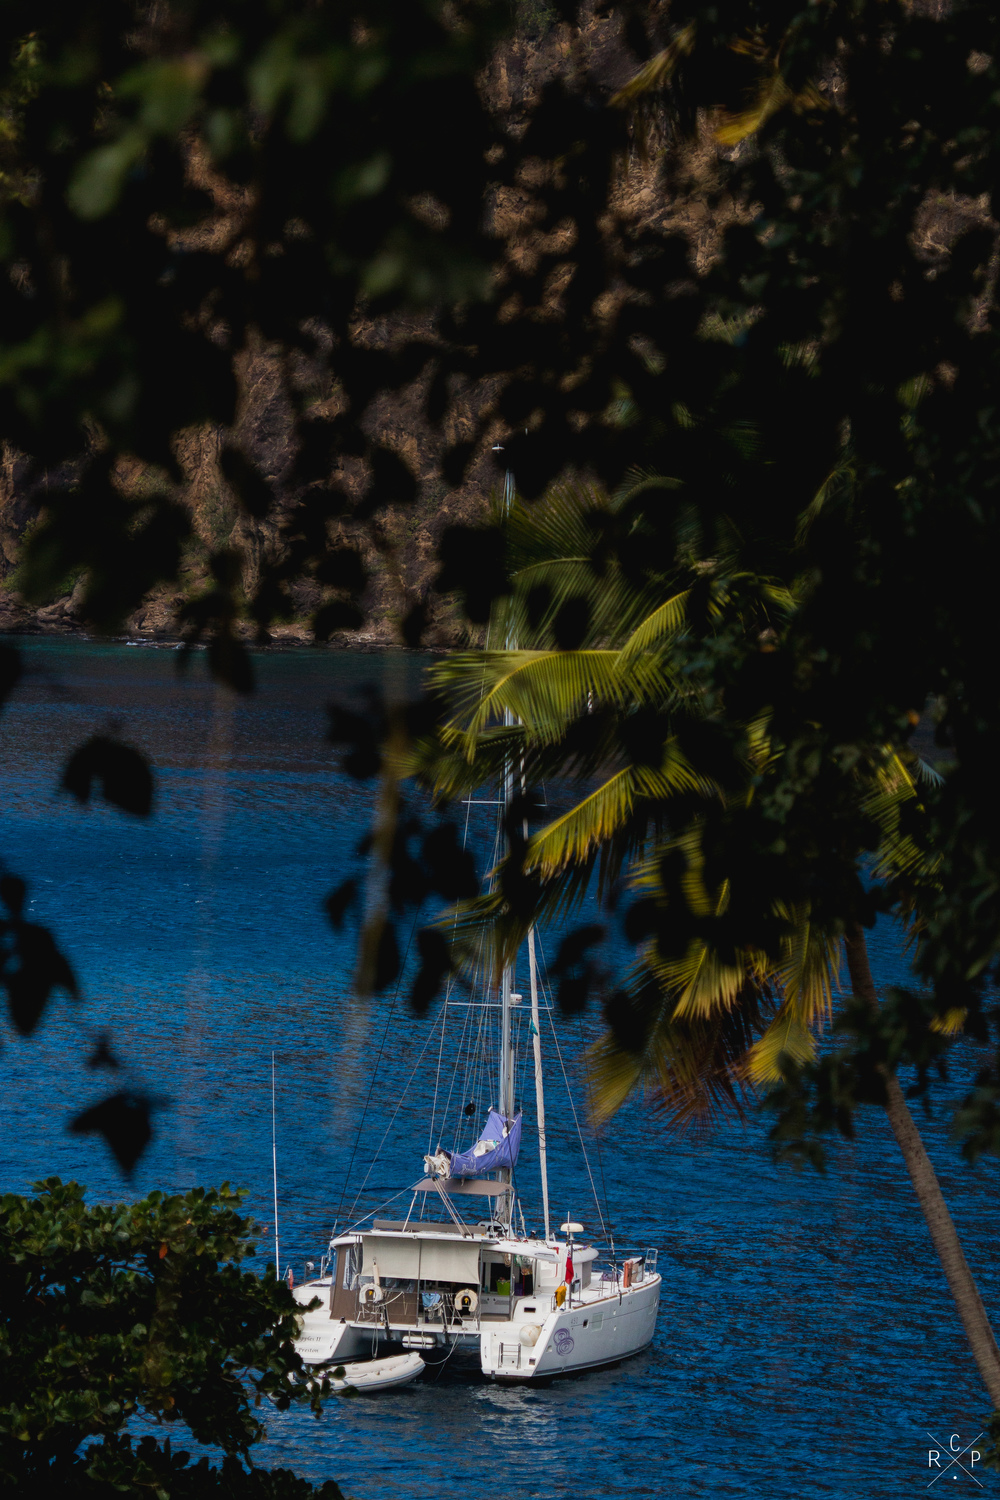 Ripples II Through Trees 1 - Pitons Bay, St. Lucia 29/01/2016